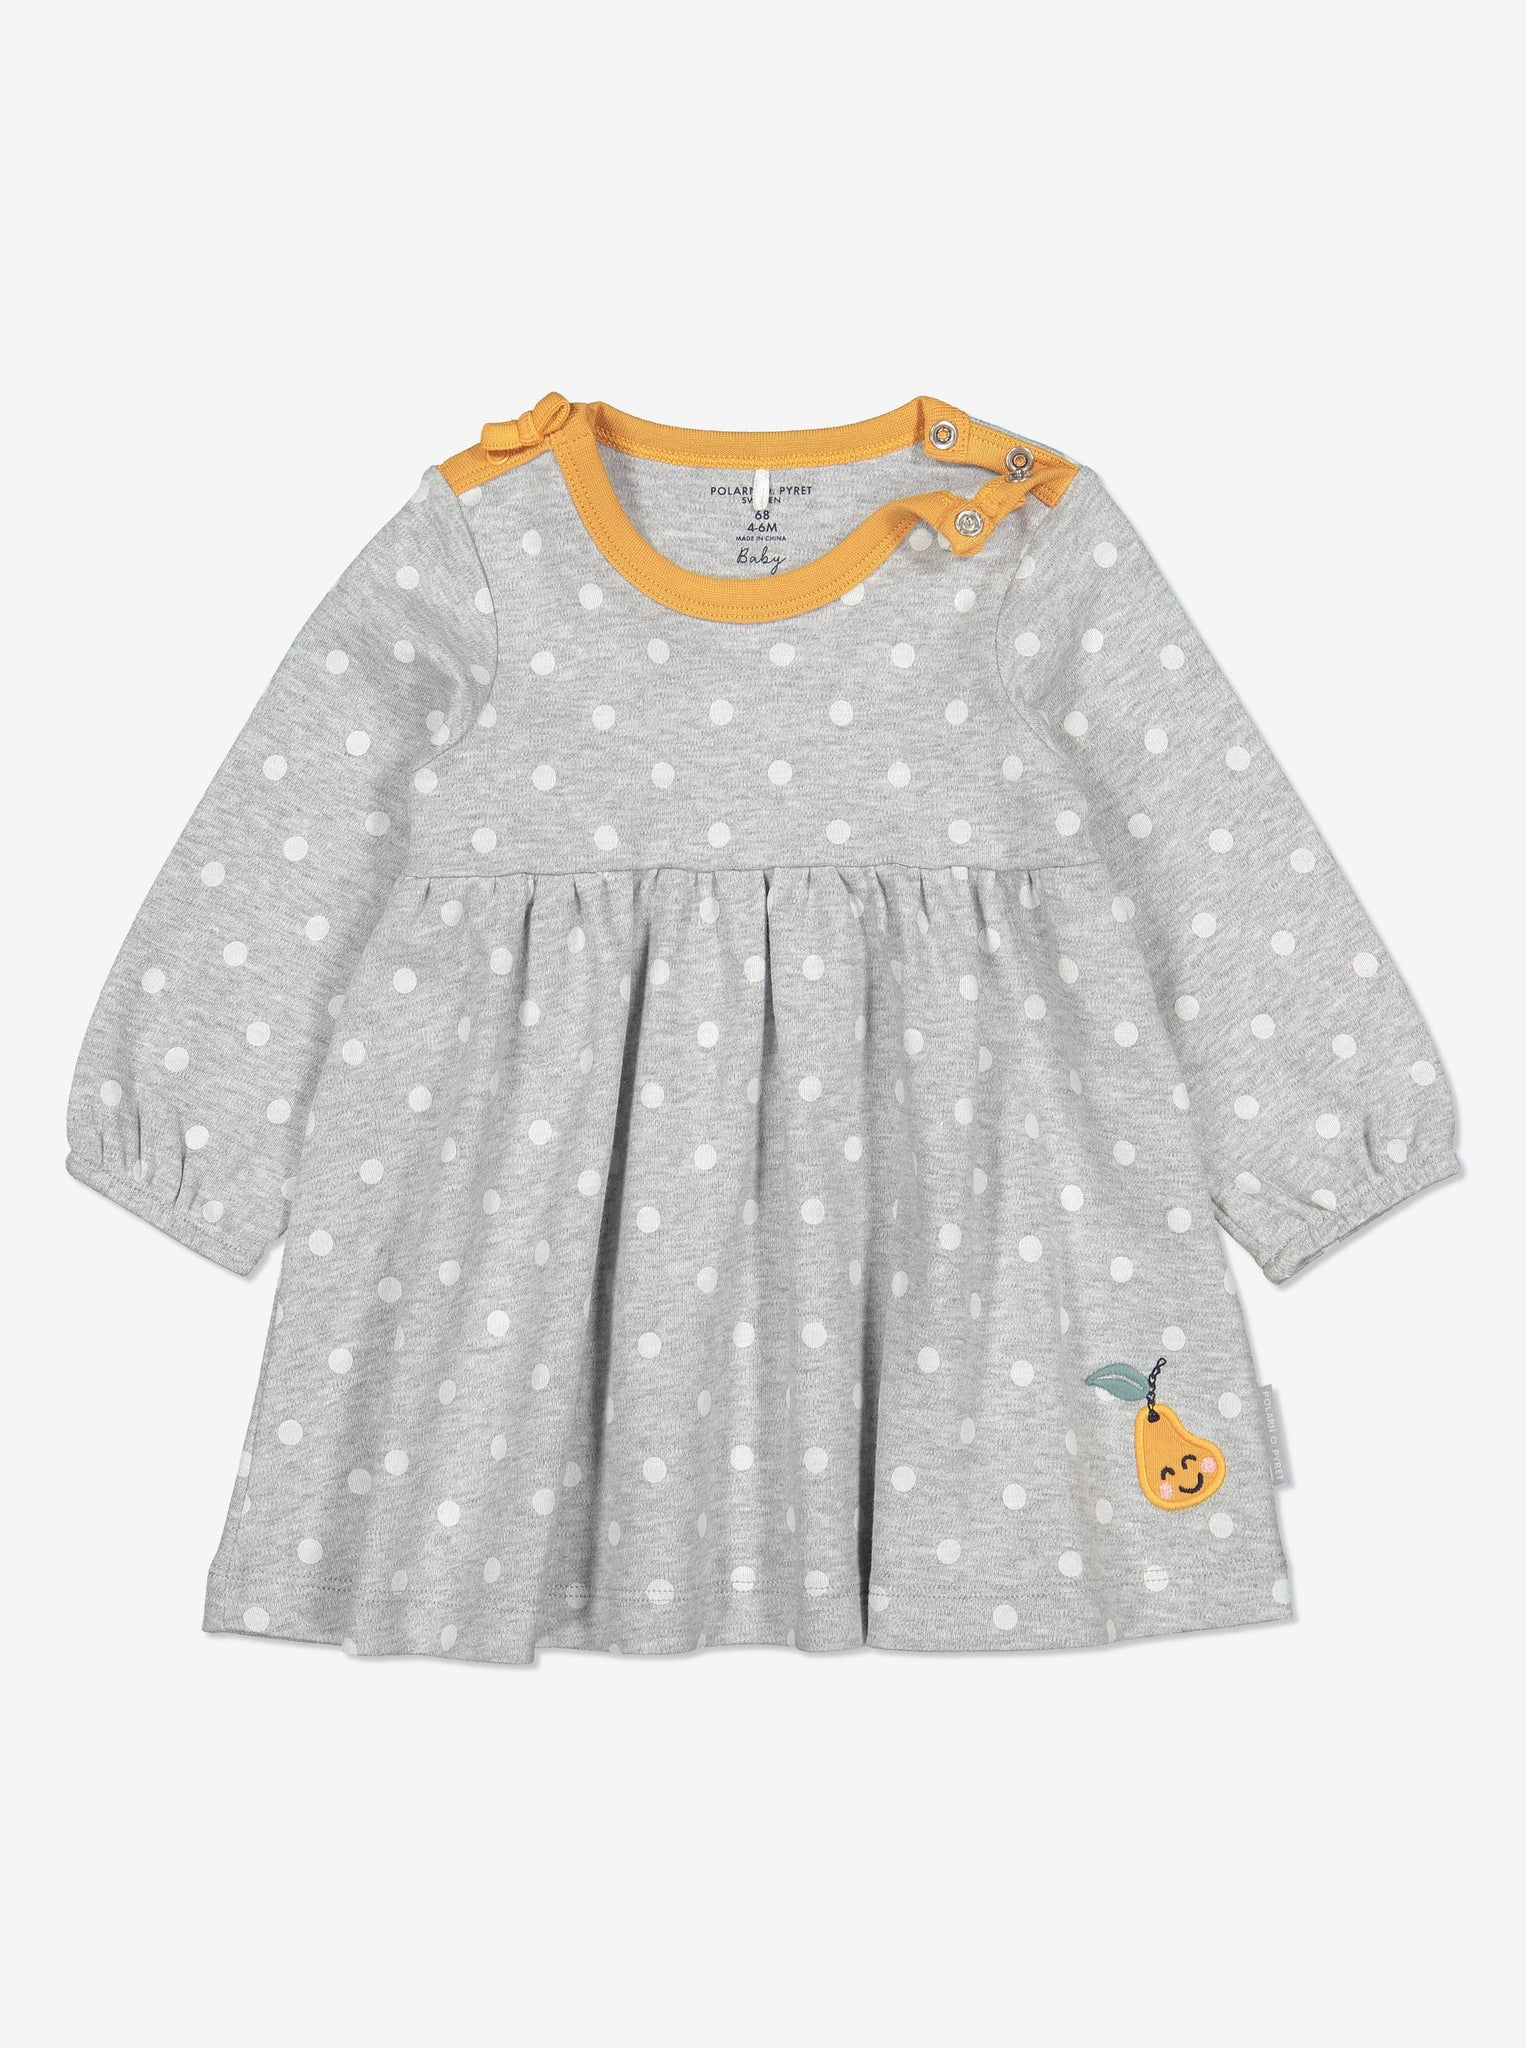 Pear Embroidered Baby Dress-Girl-0-1y-Grey